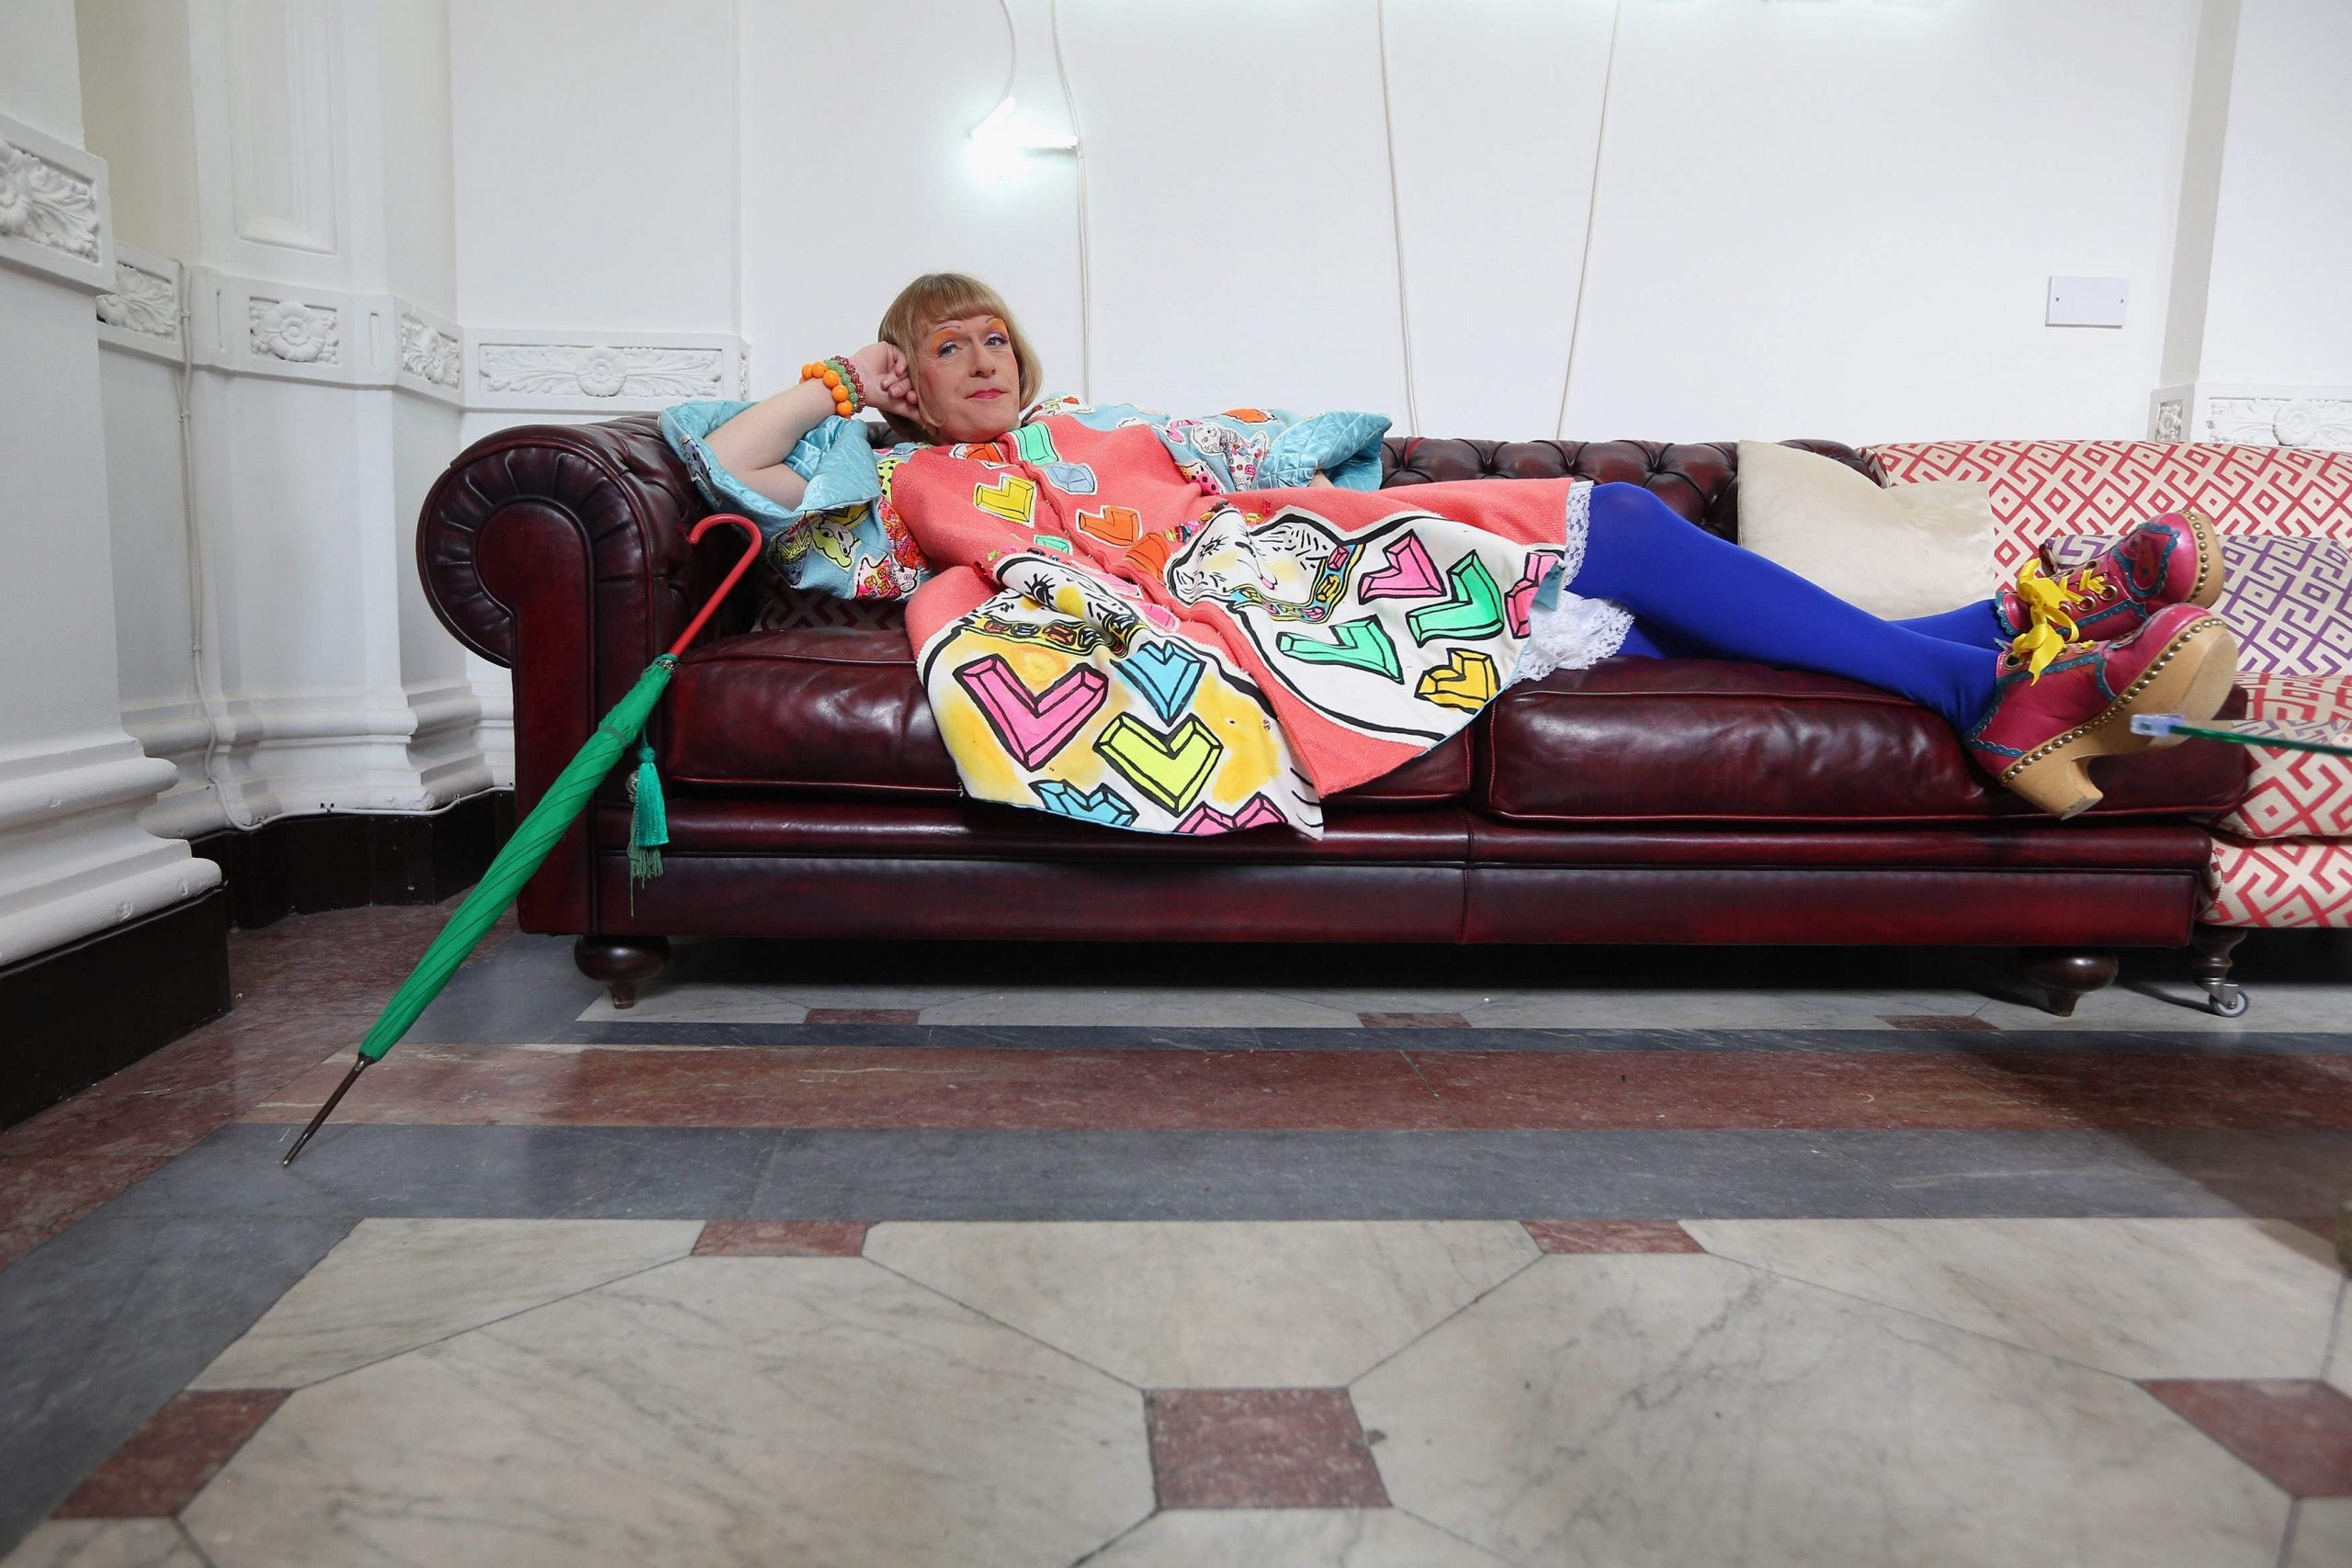 Grayson Perry: The rise and fall of Default Man